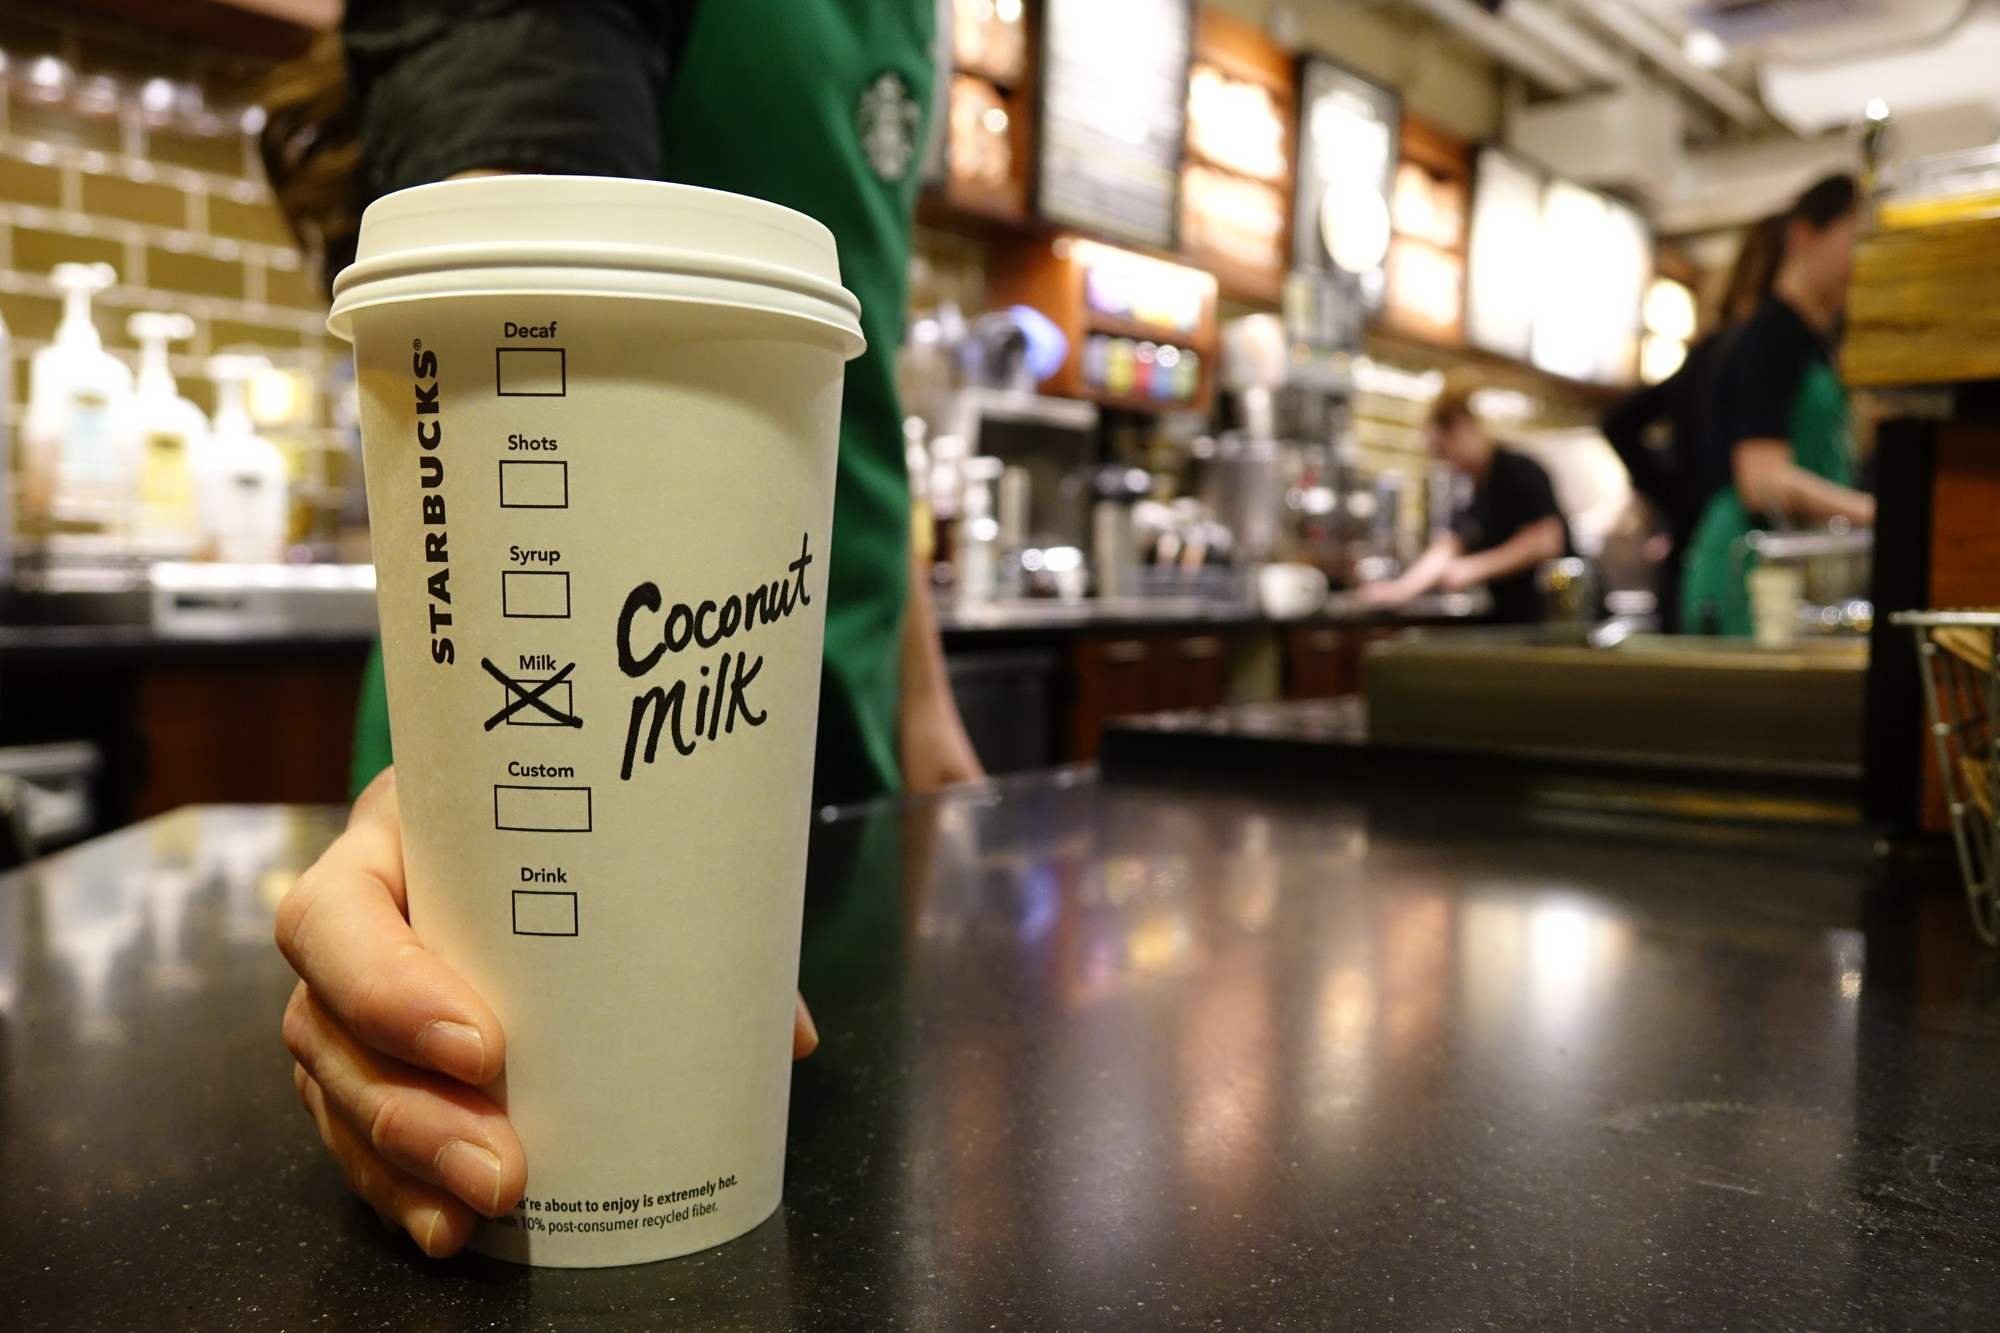 Starbucks Canada responds to customers and adds Coconut Milk